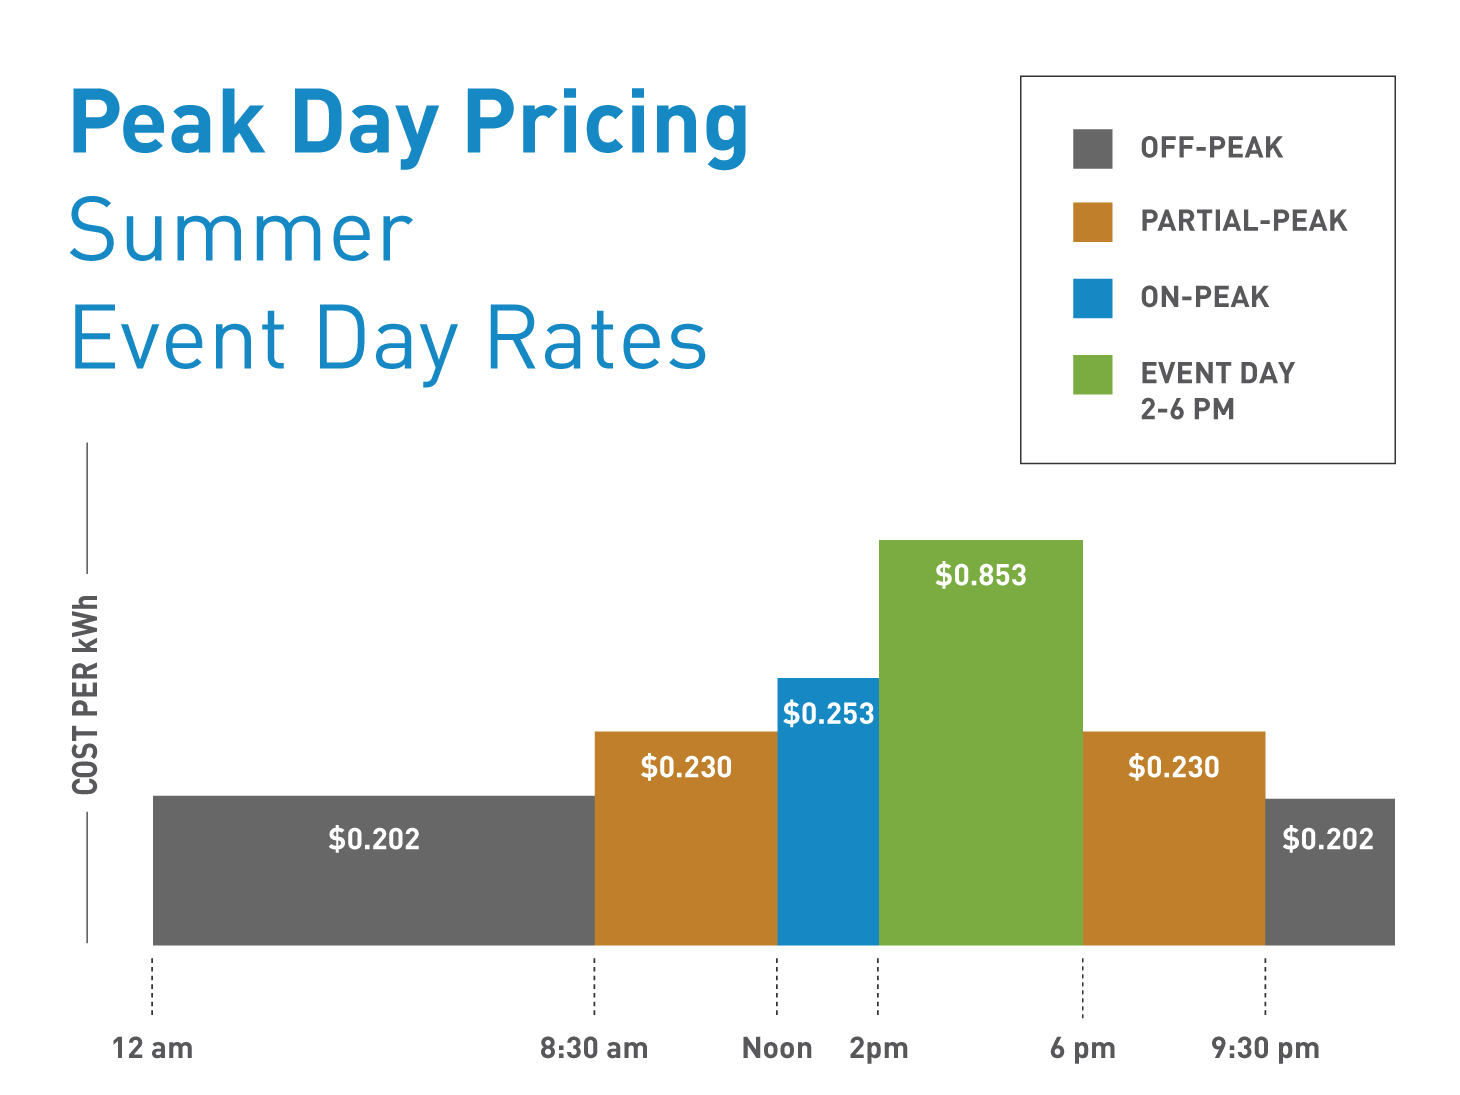 Peak day Pricing Summer Event Day Rates